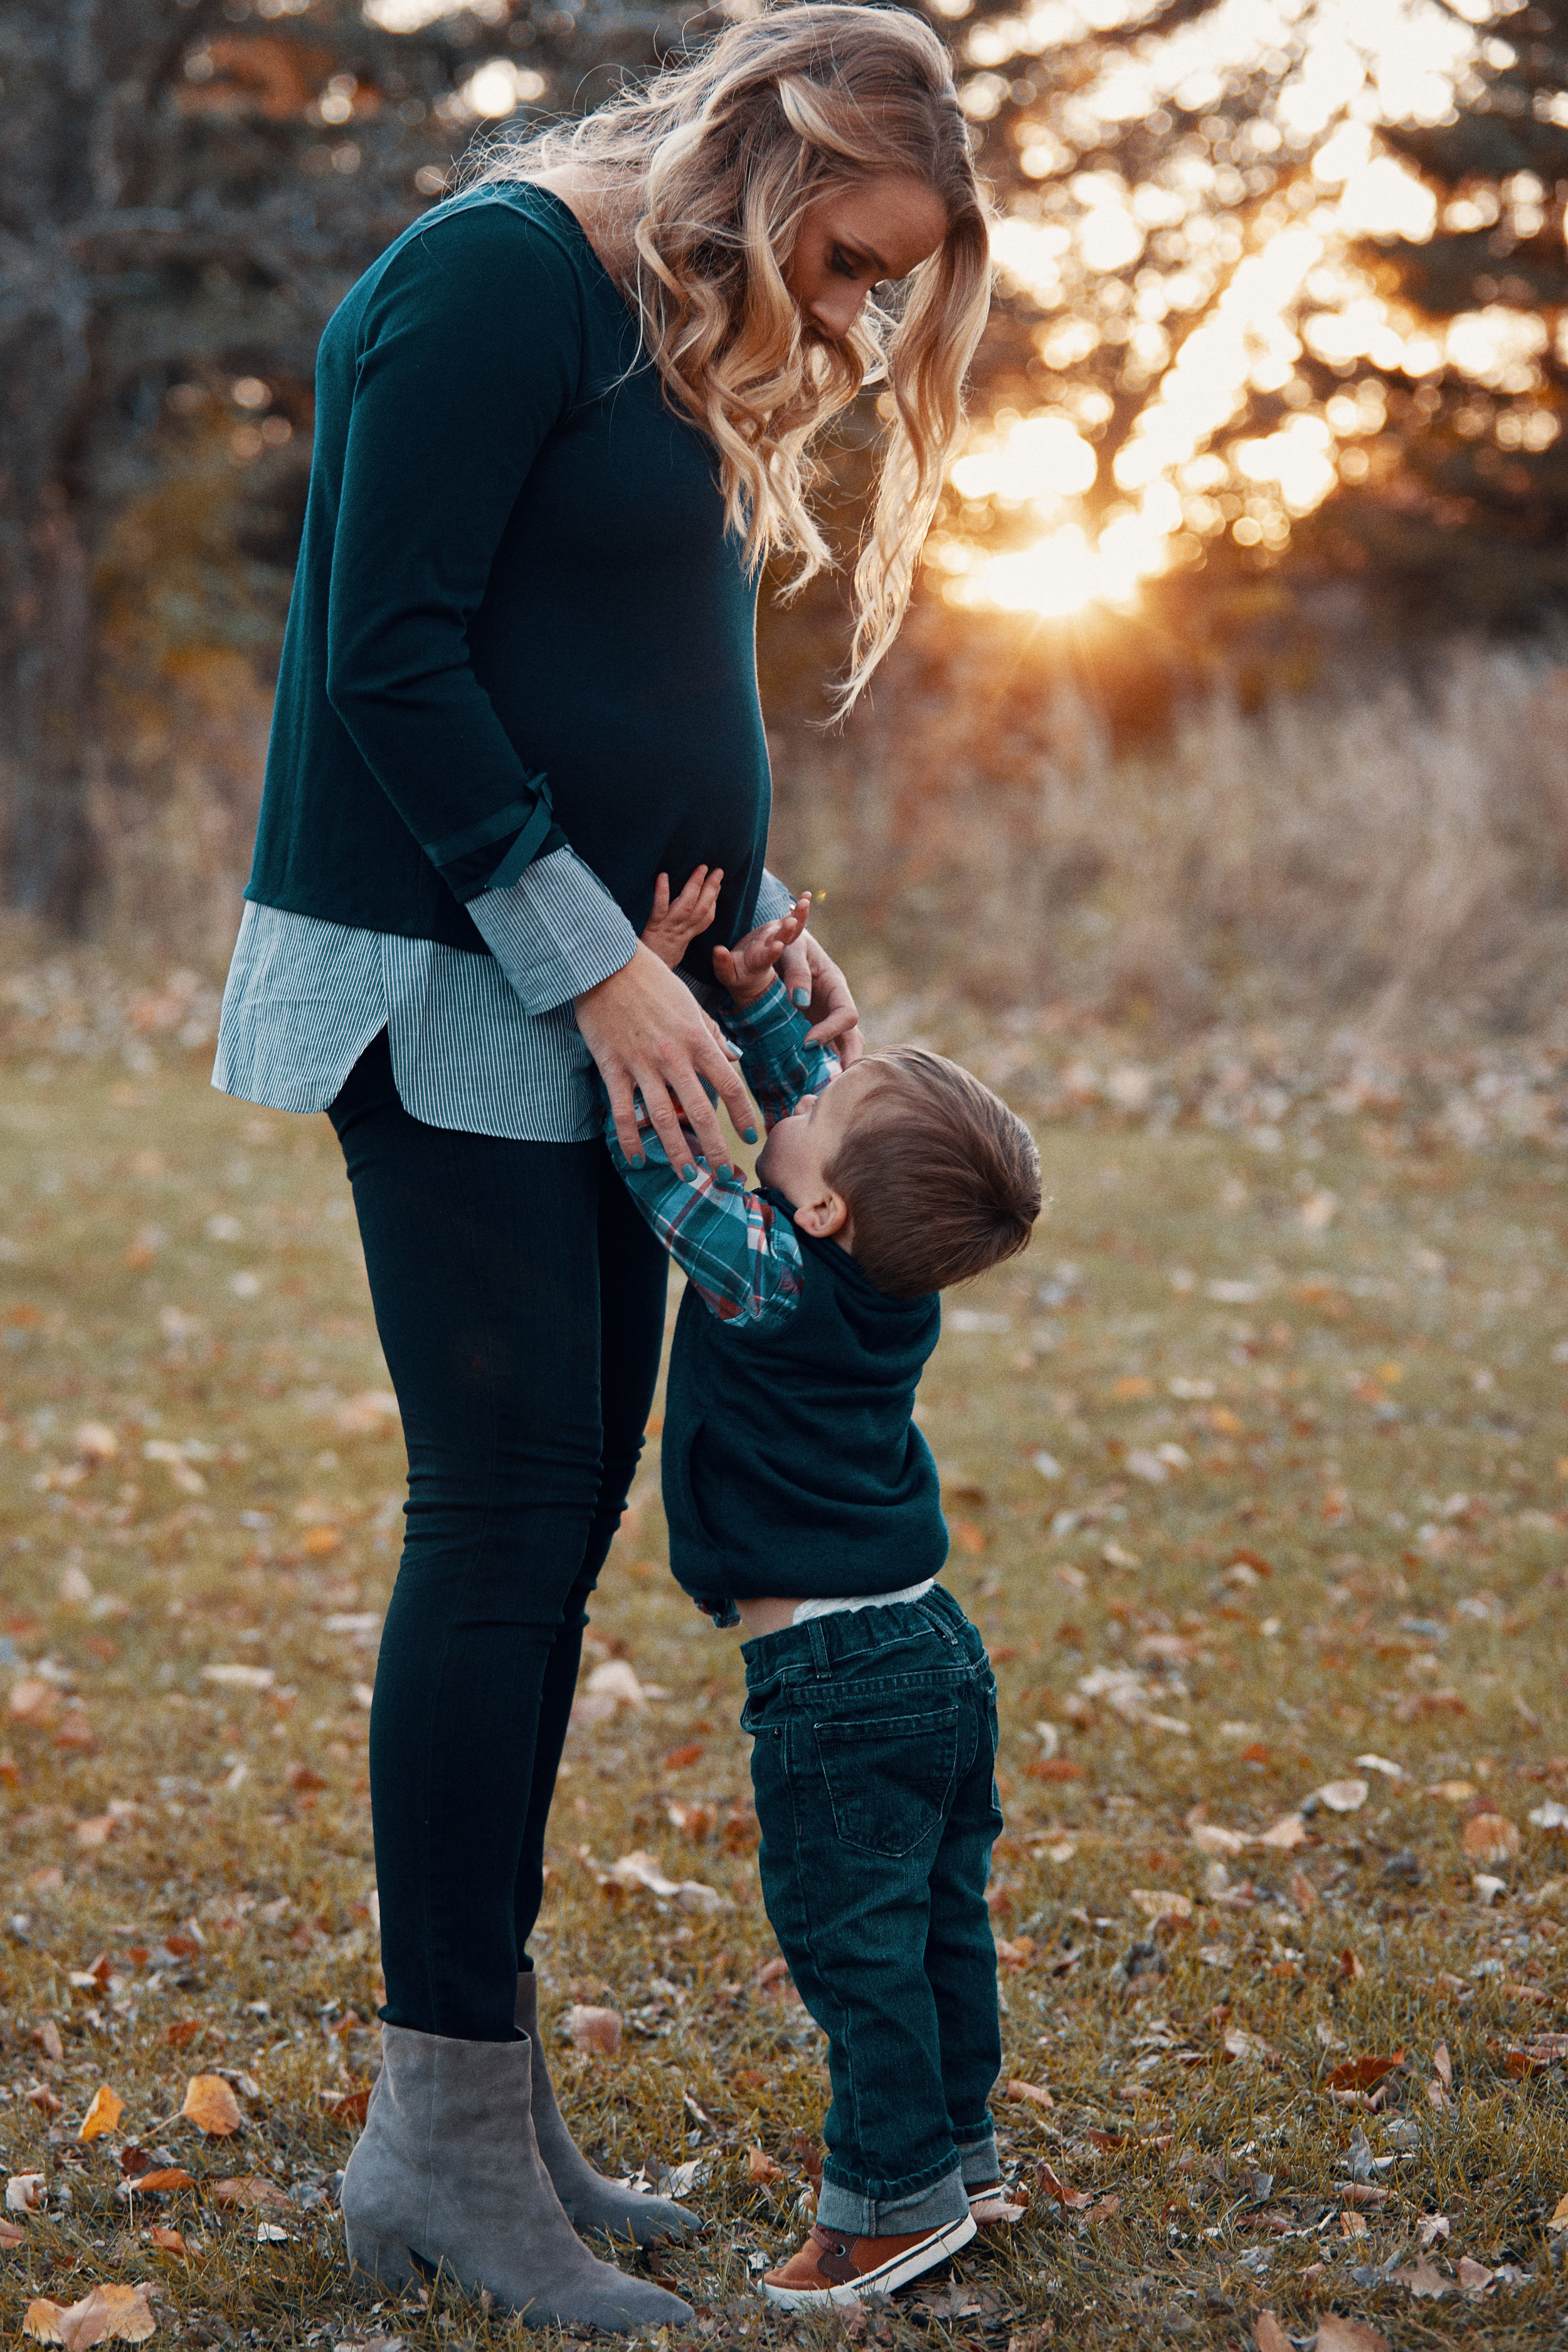 Thielen_Family_Maternity_Photos_By_Joe_Lemke_047.JPG